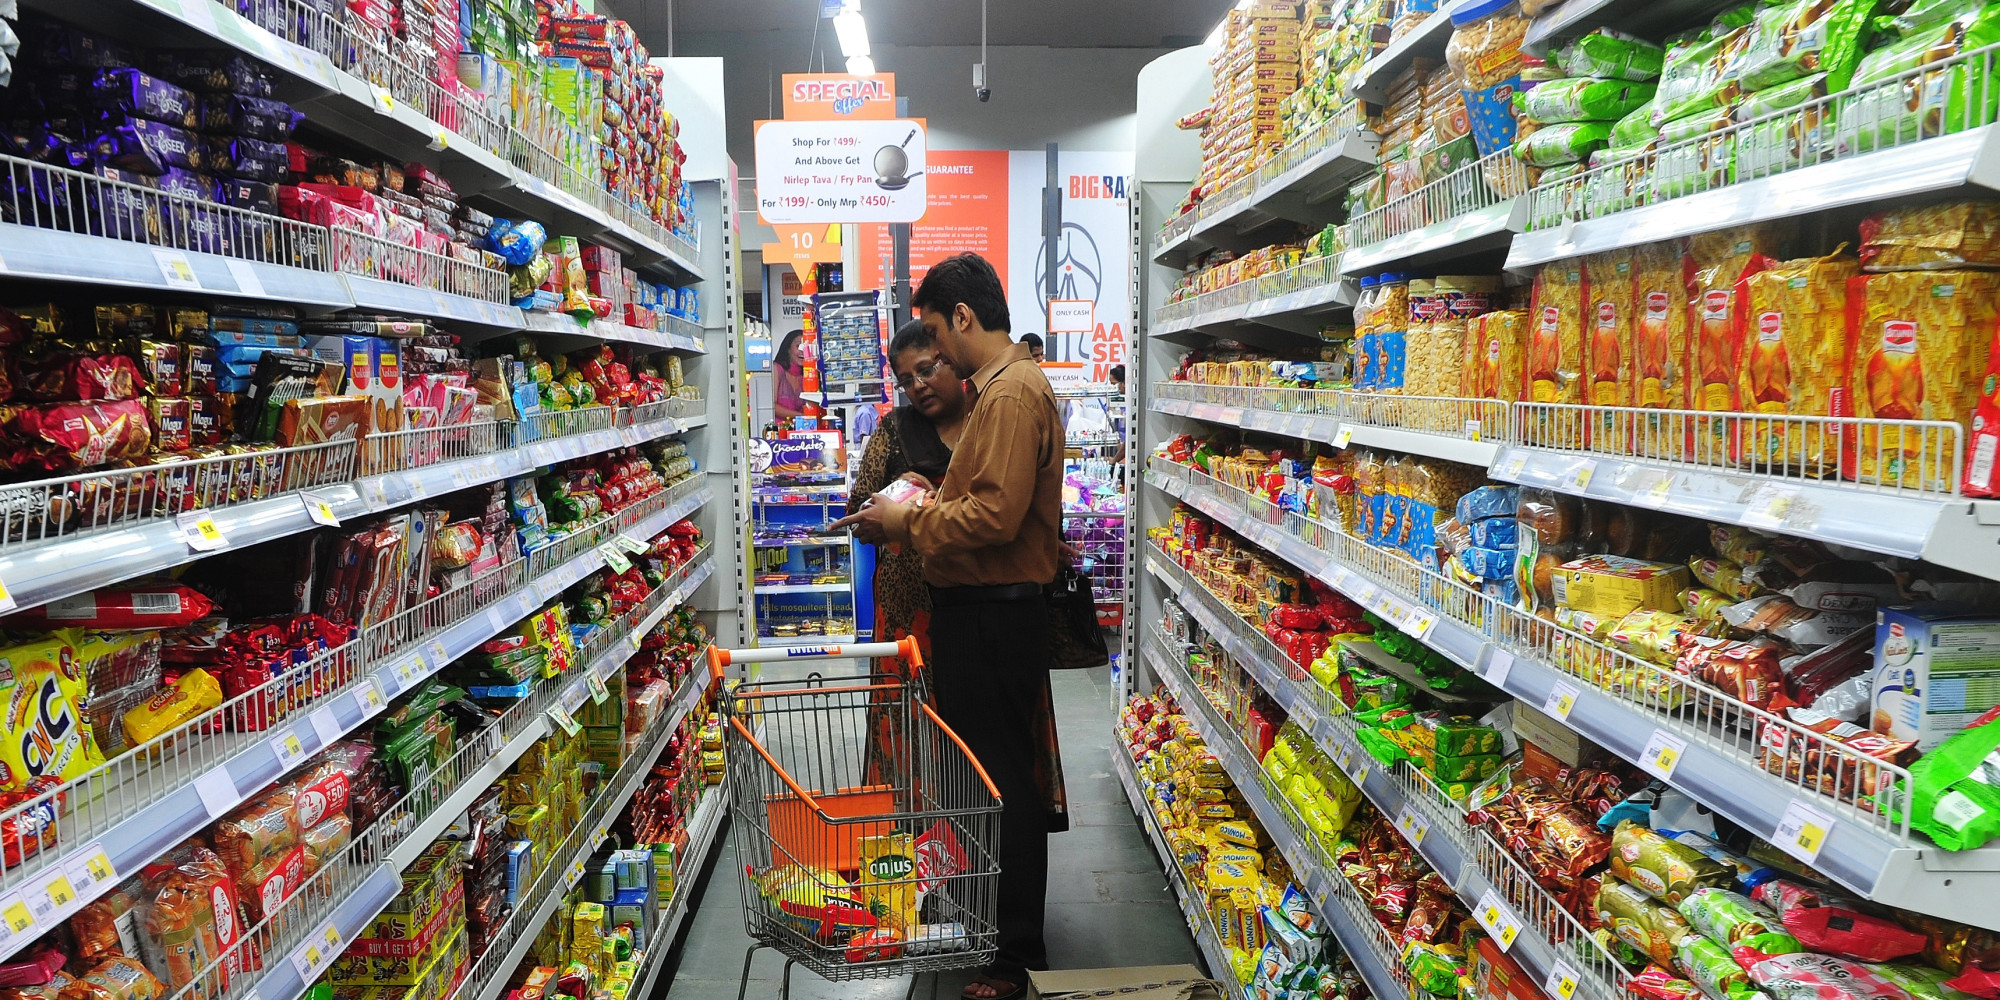 retail in india Best chennai (madras) shopping: see reviews and photos of shops, malls & outlets in chennai (madras), india on tripadvisor.